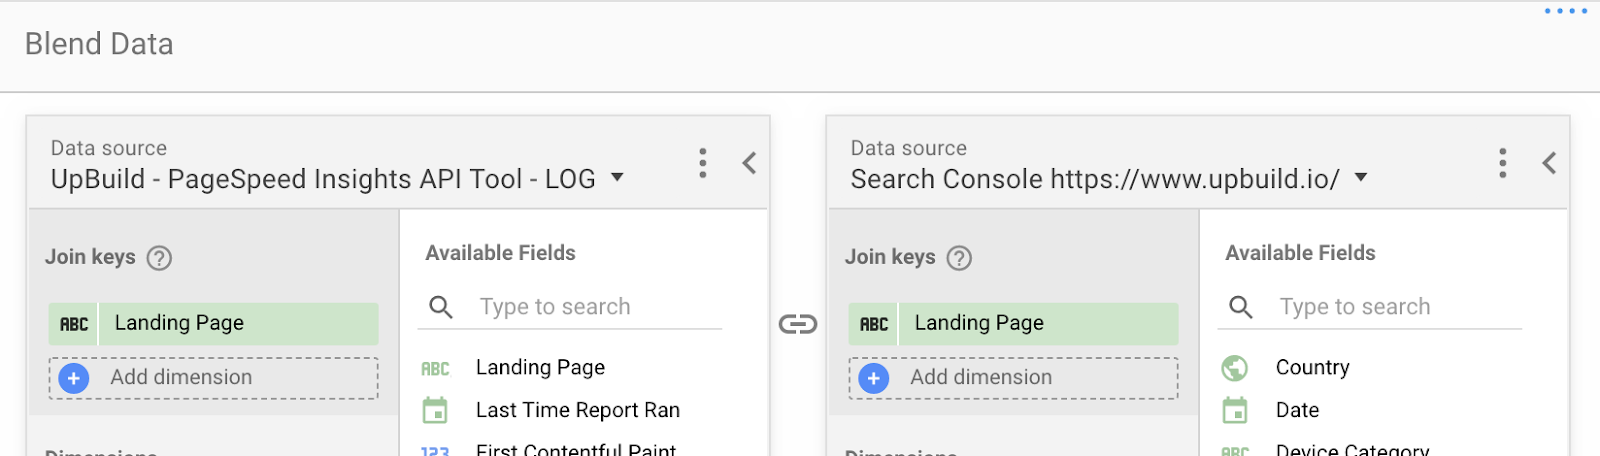 How to Automate Pagespeed Insights For Multiple URLs using Google Sheets 15